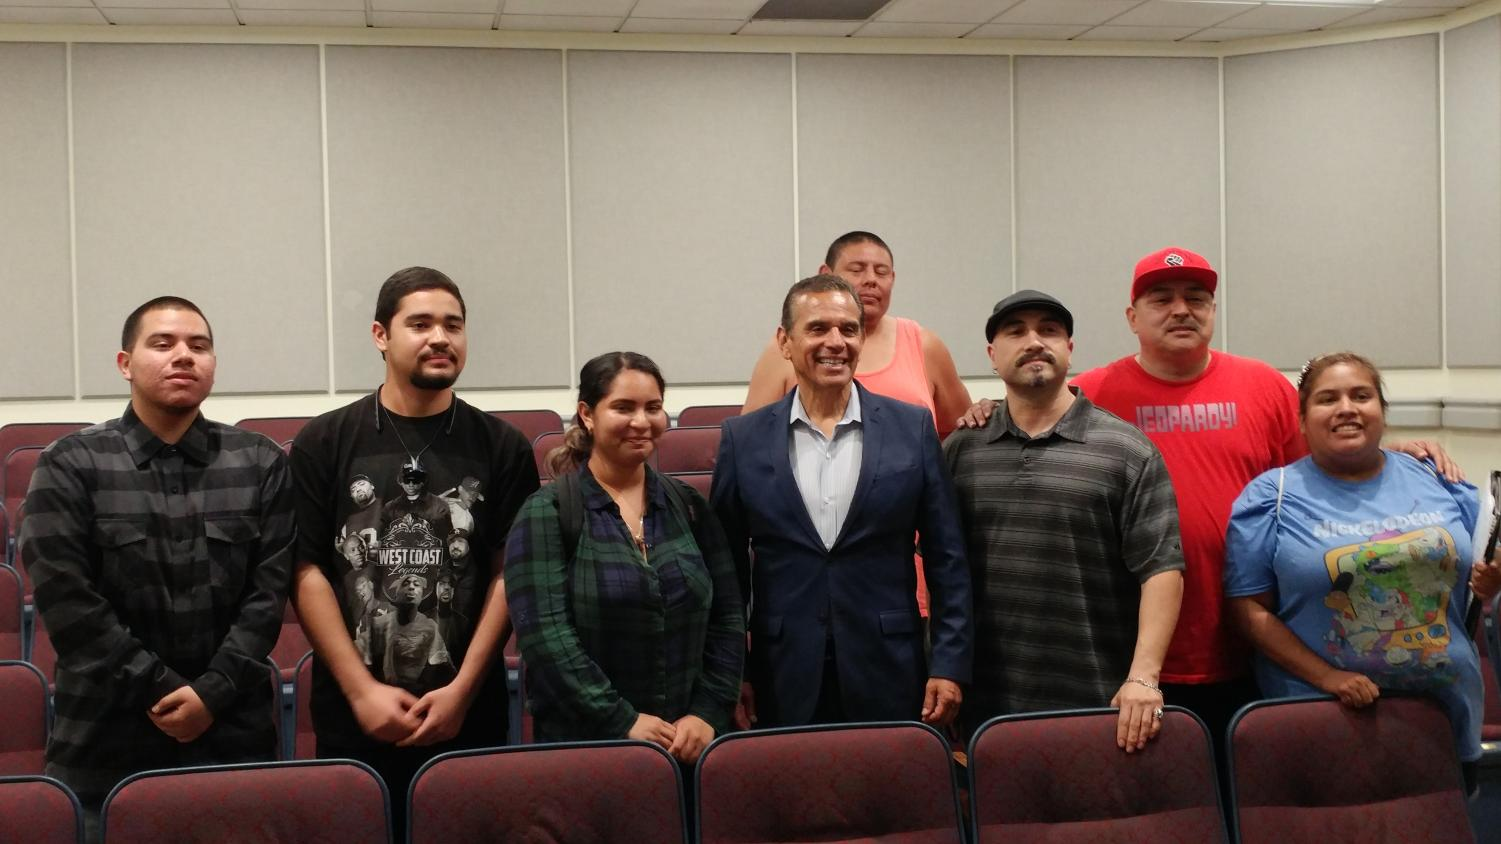 2018 California Governor Candidate Antonio Villaraigosa answers questions from FCC students about issues facing the Central Valley and more. Photo/Andrew R. Leal